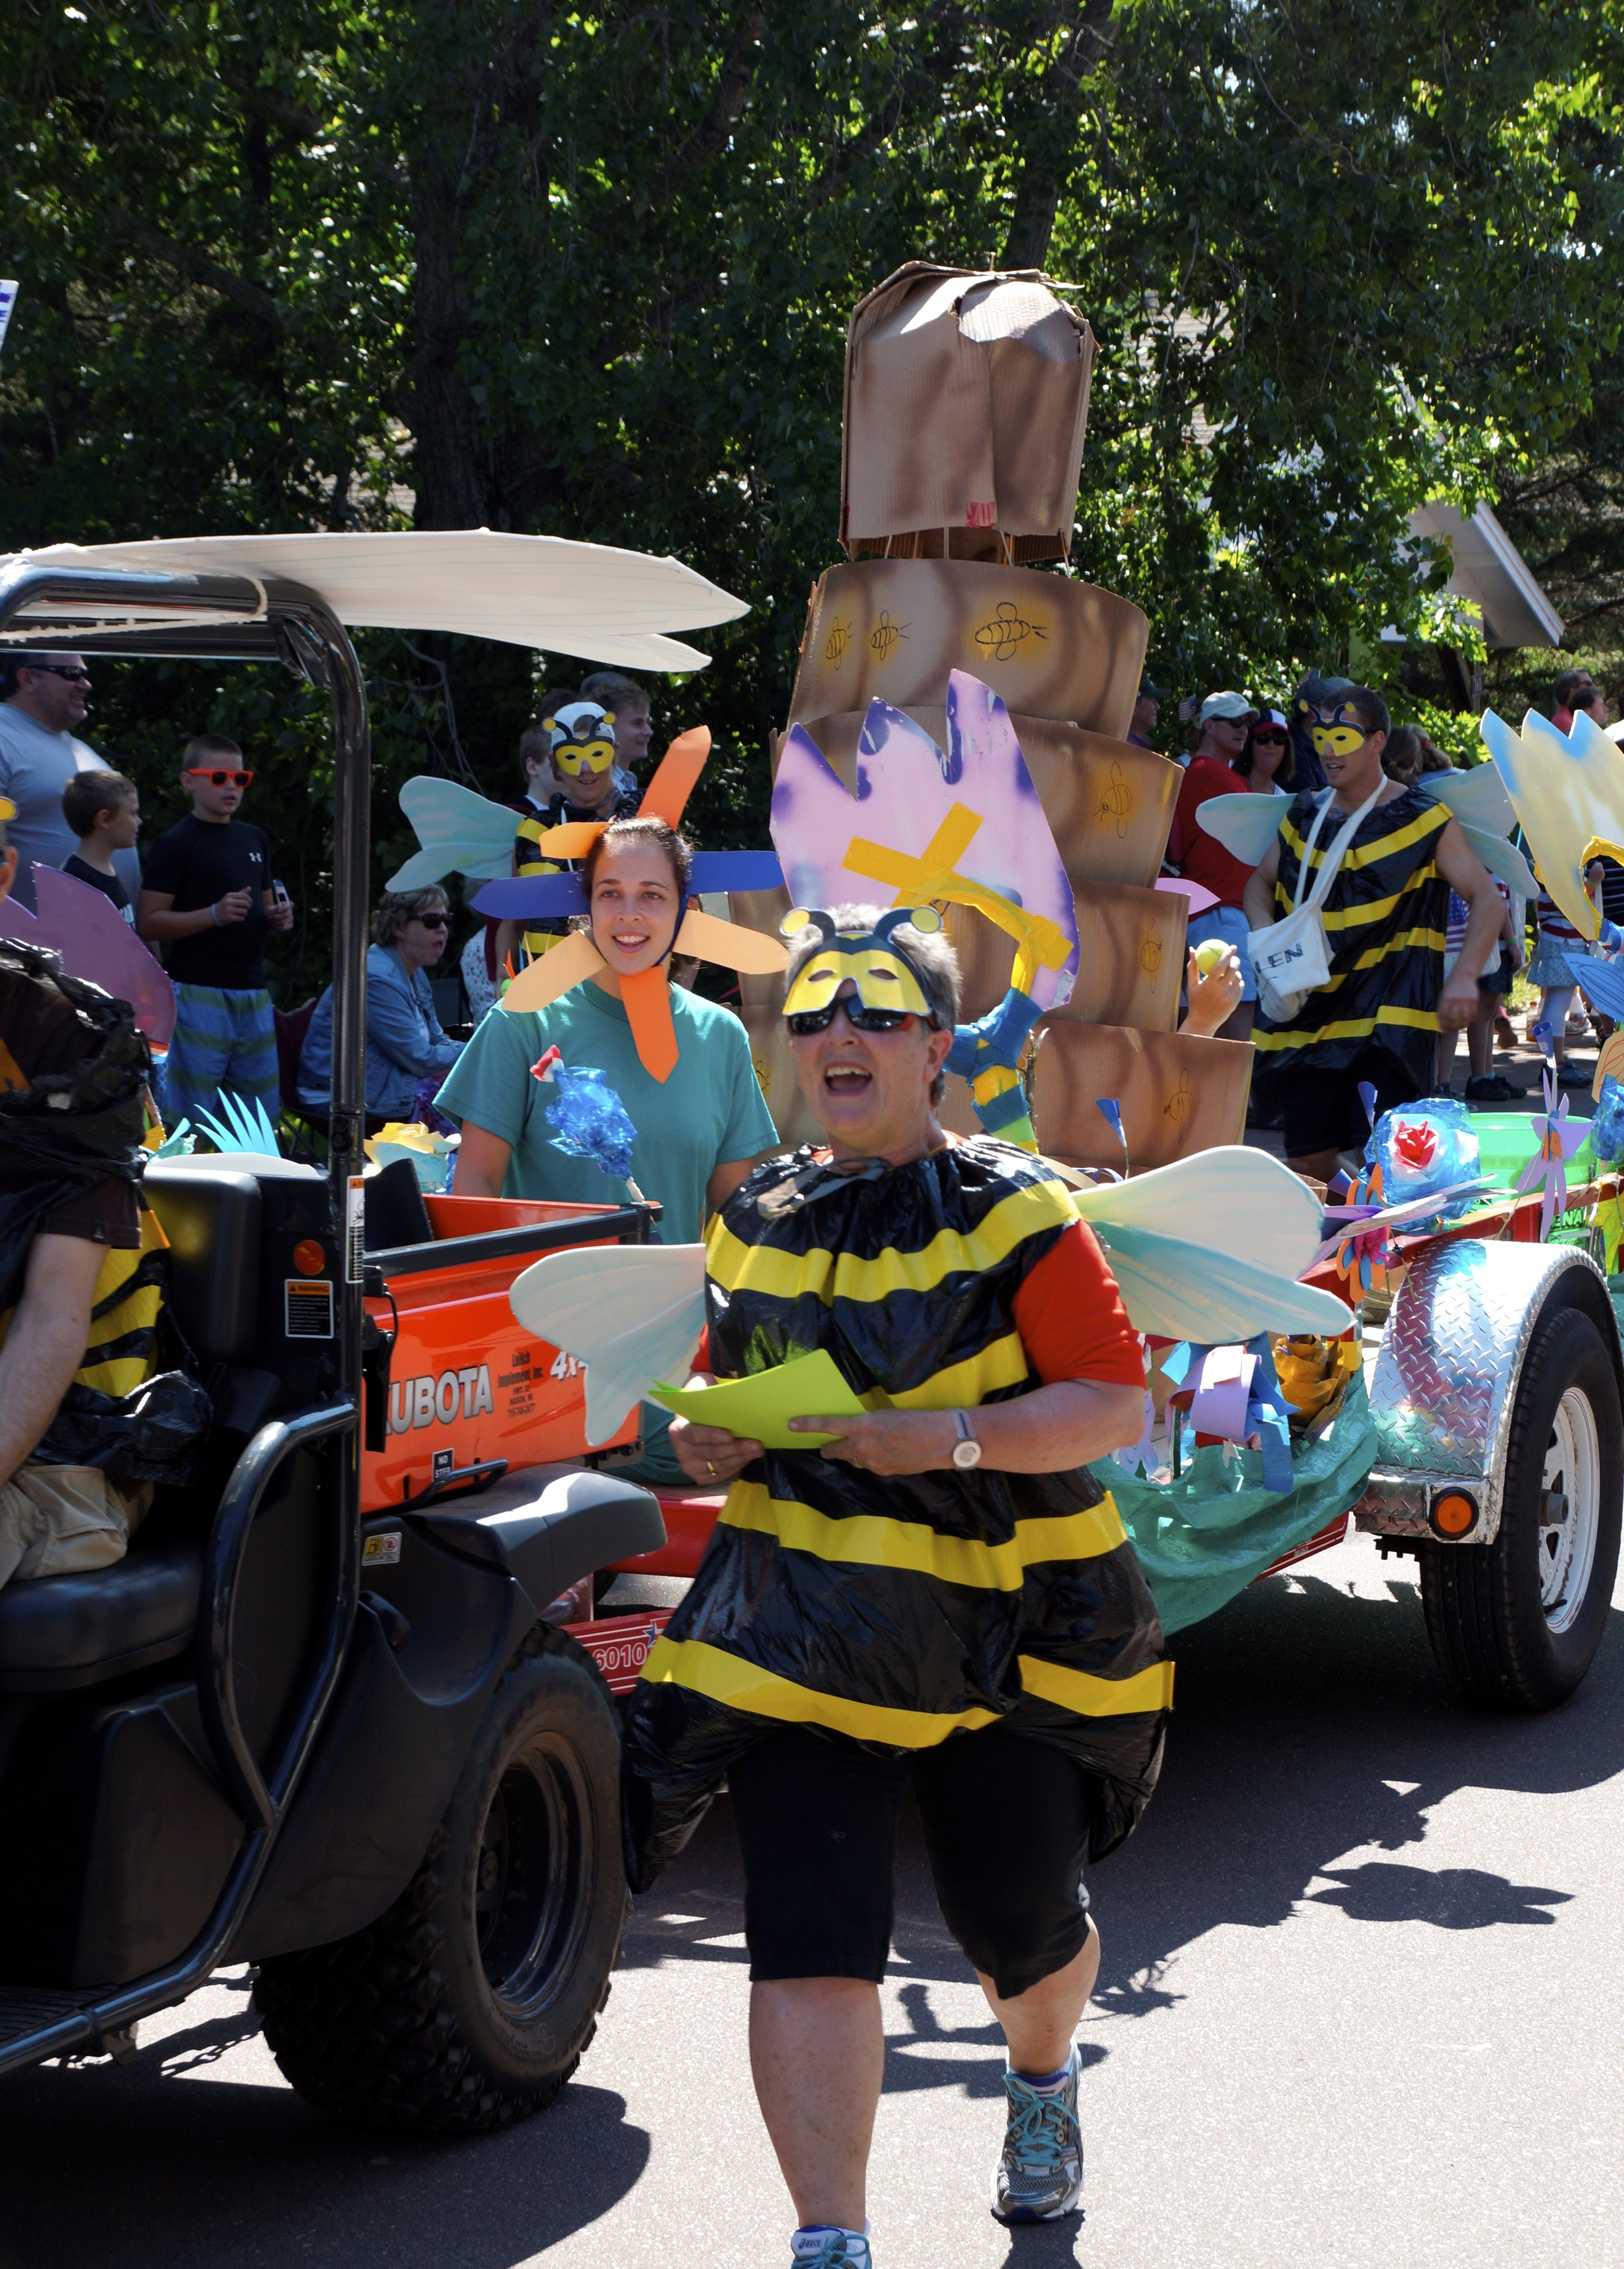 Our grand-prize winner for 2013: Bees, pollinators, and colony collapse